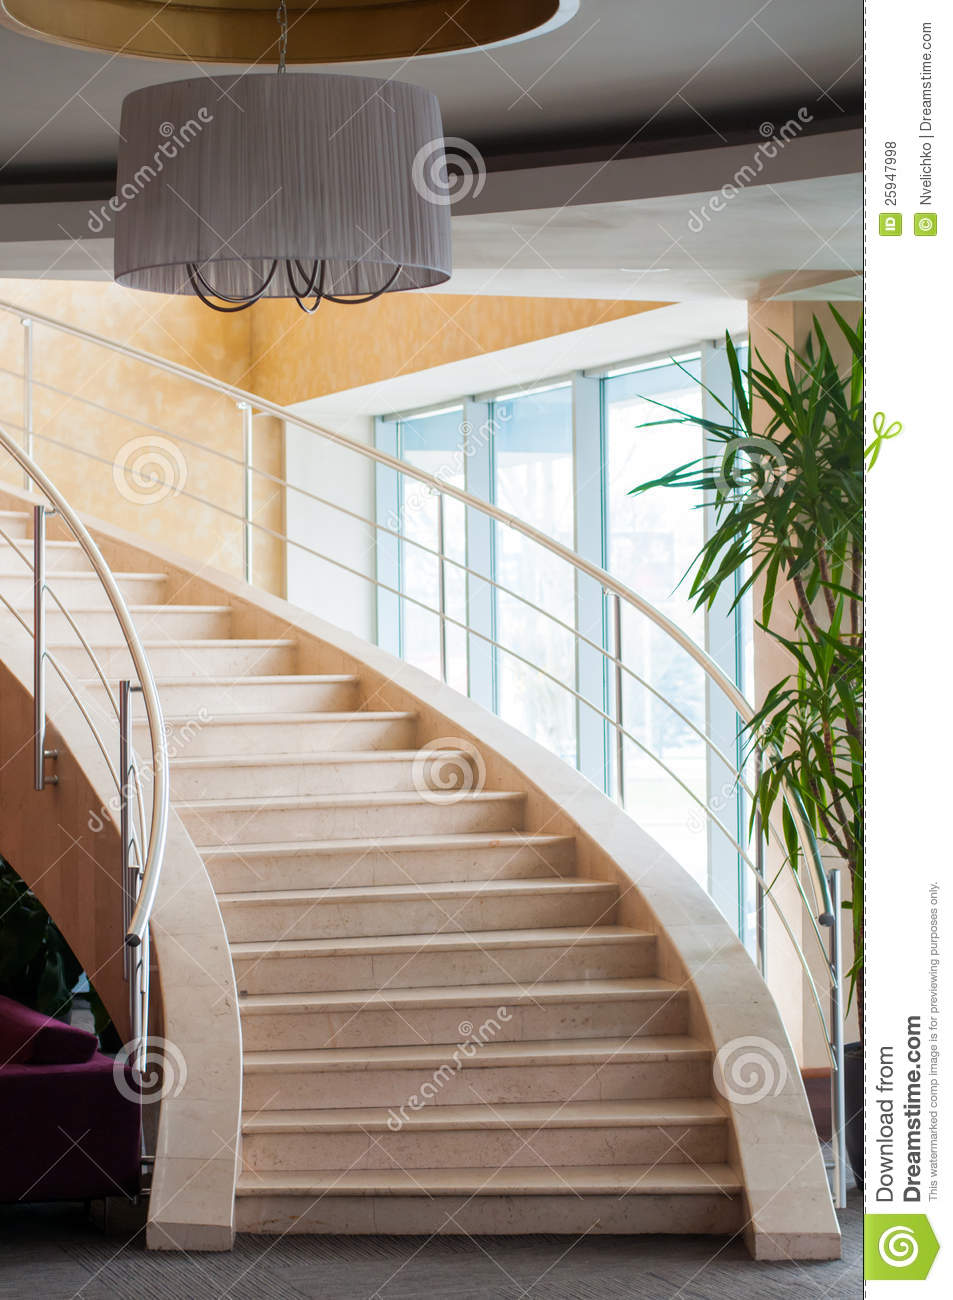 Foyer In Hotel : Modern staircase in hotel foyer royalty free stock photos